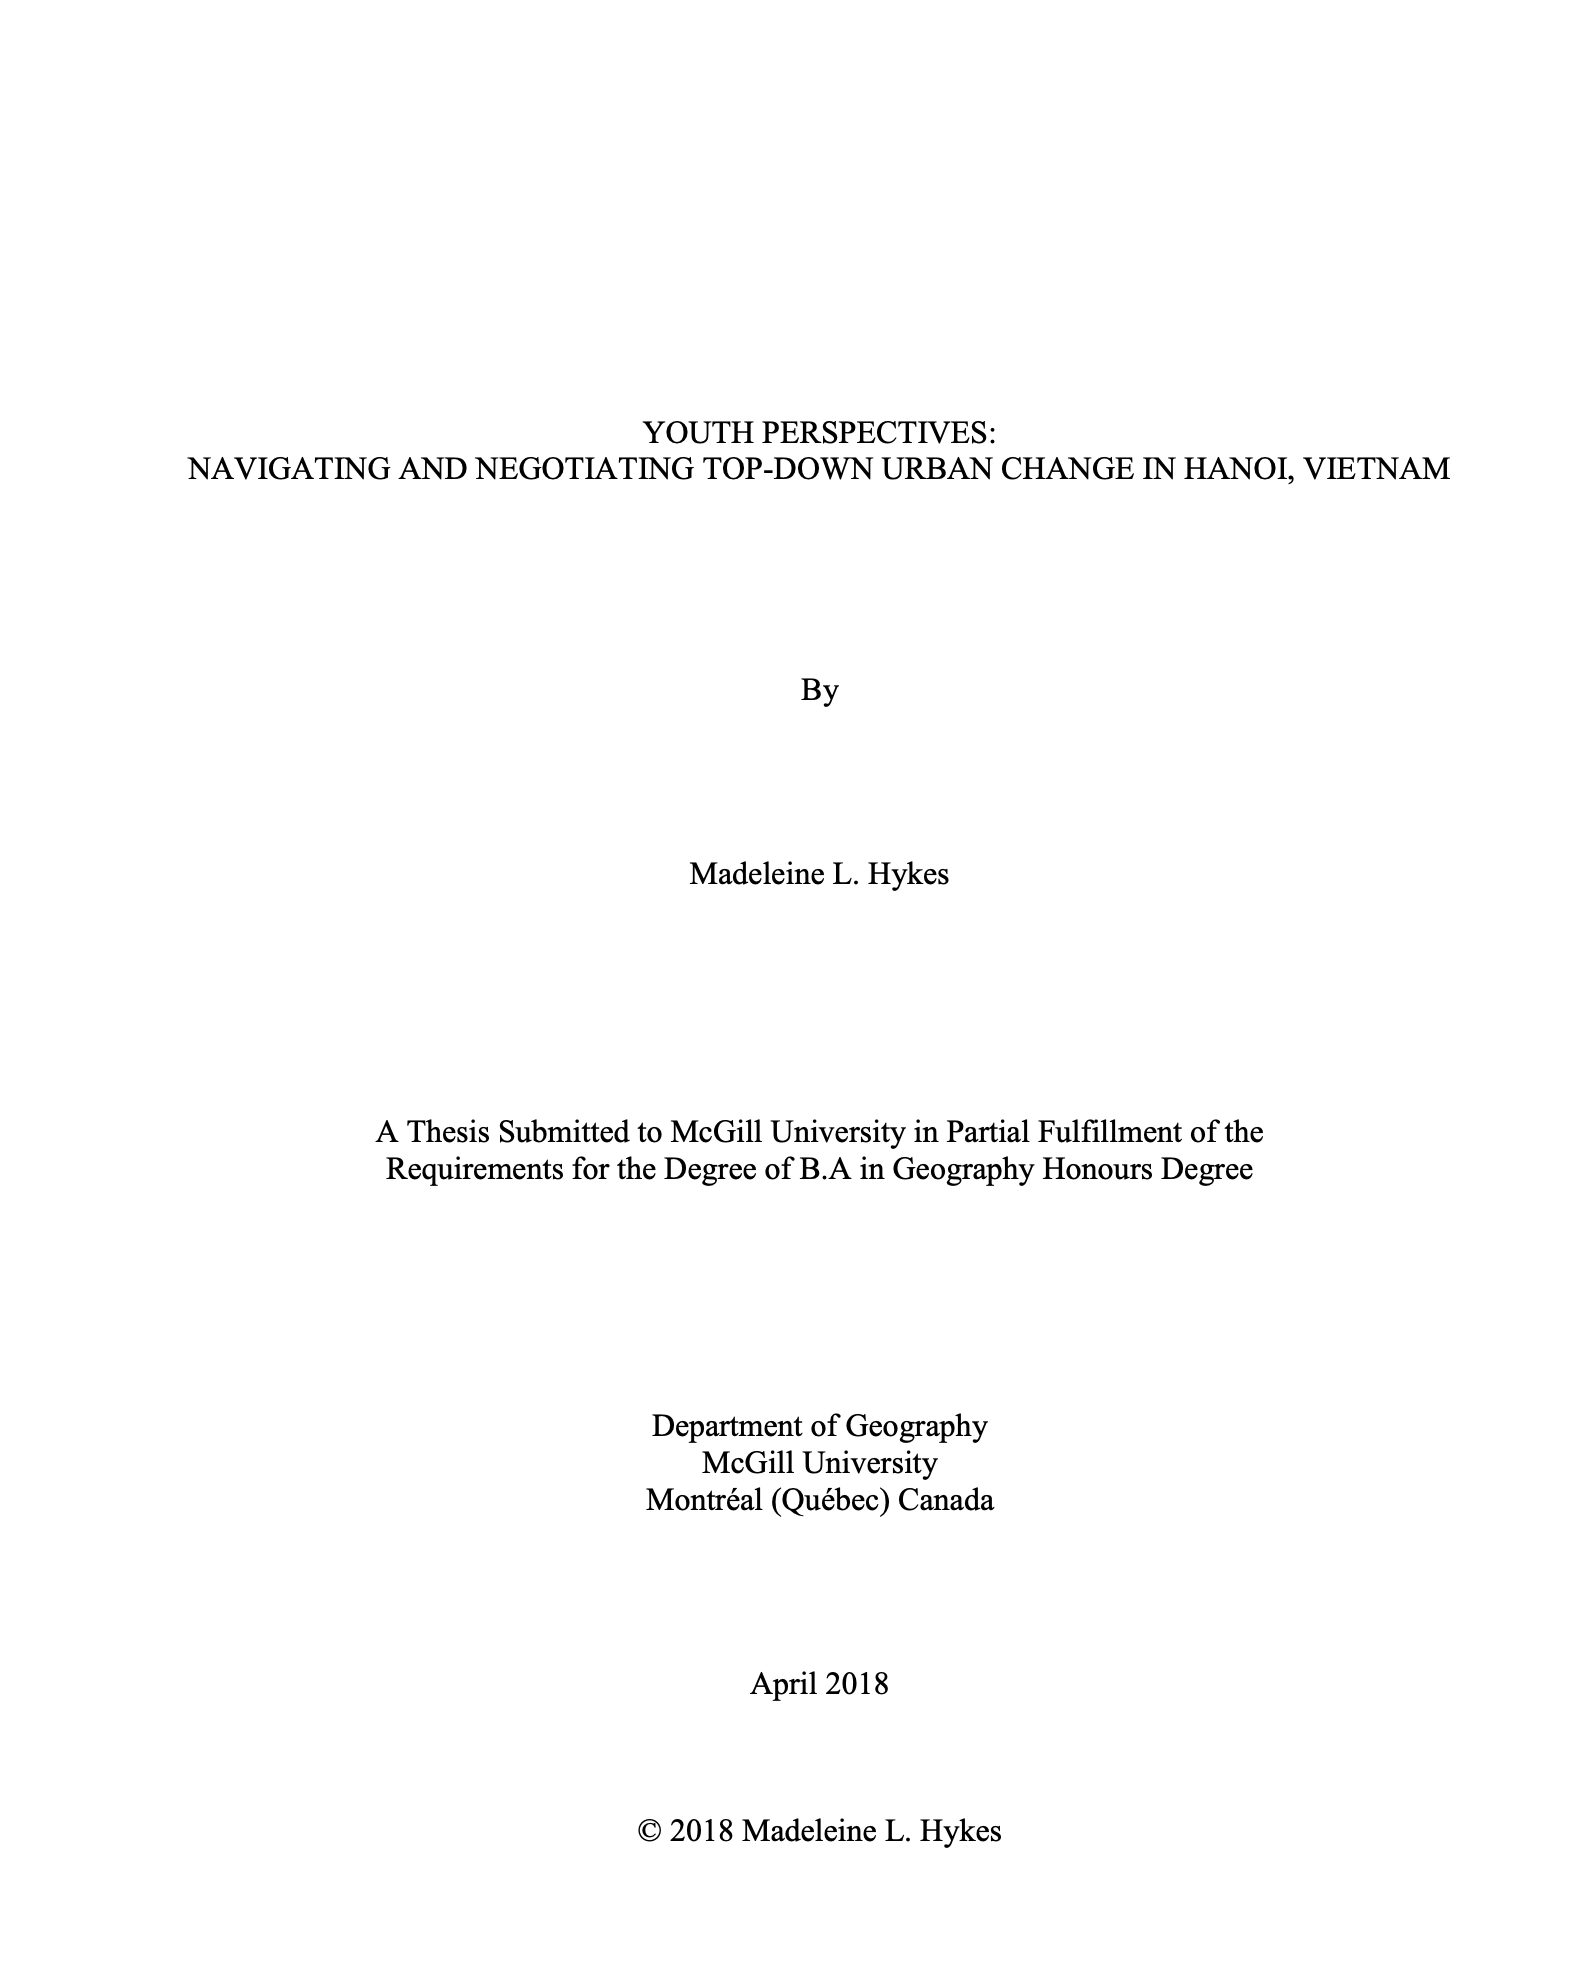 Link to my Honour's Thesis